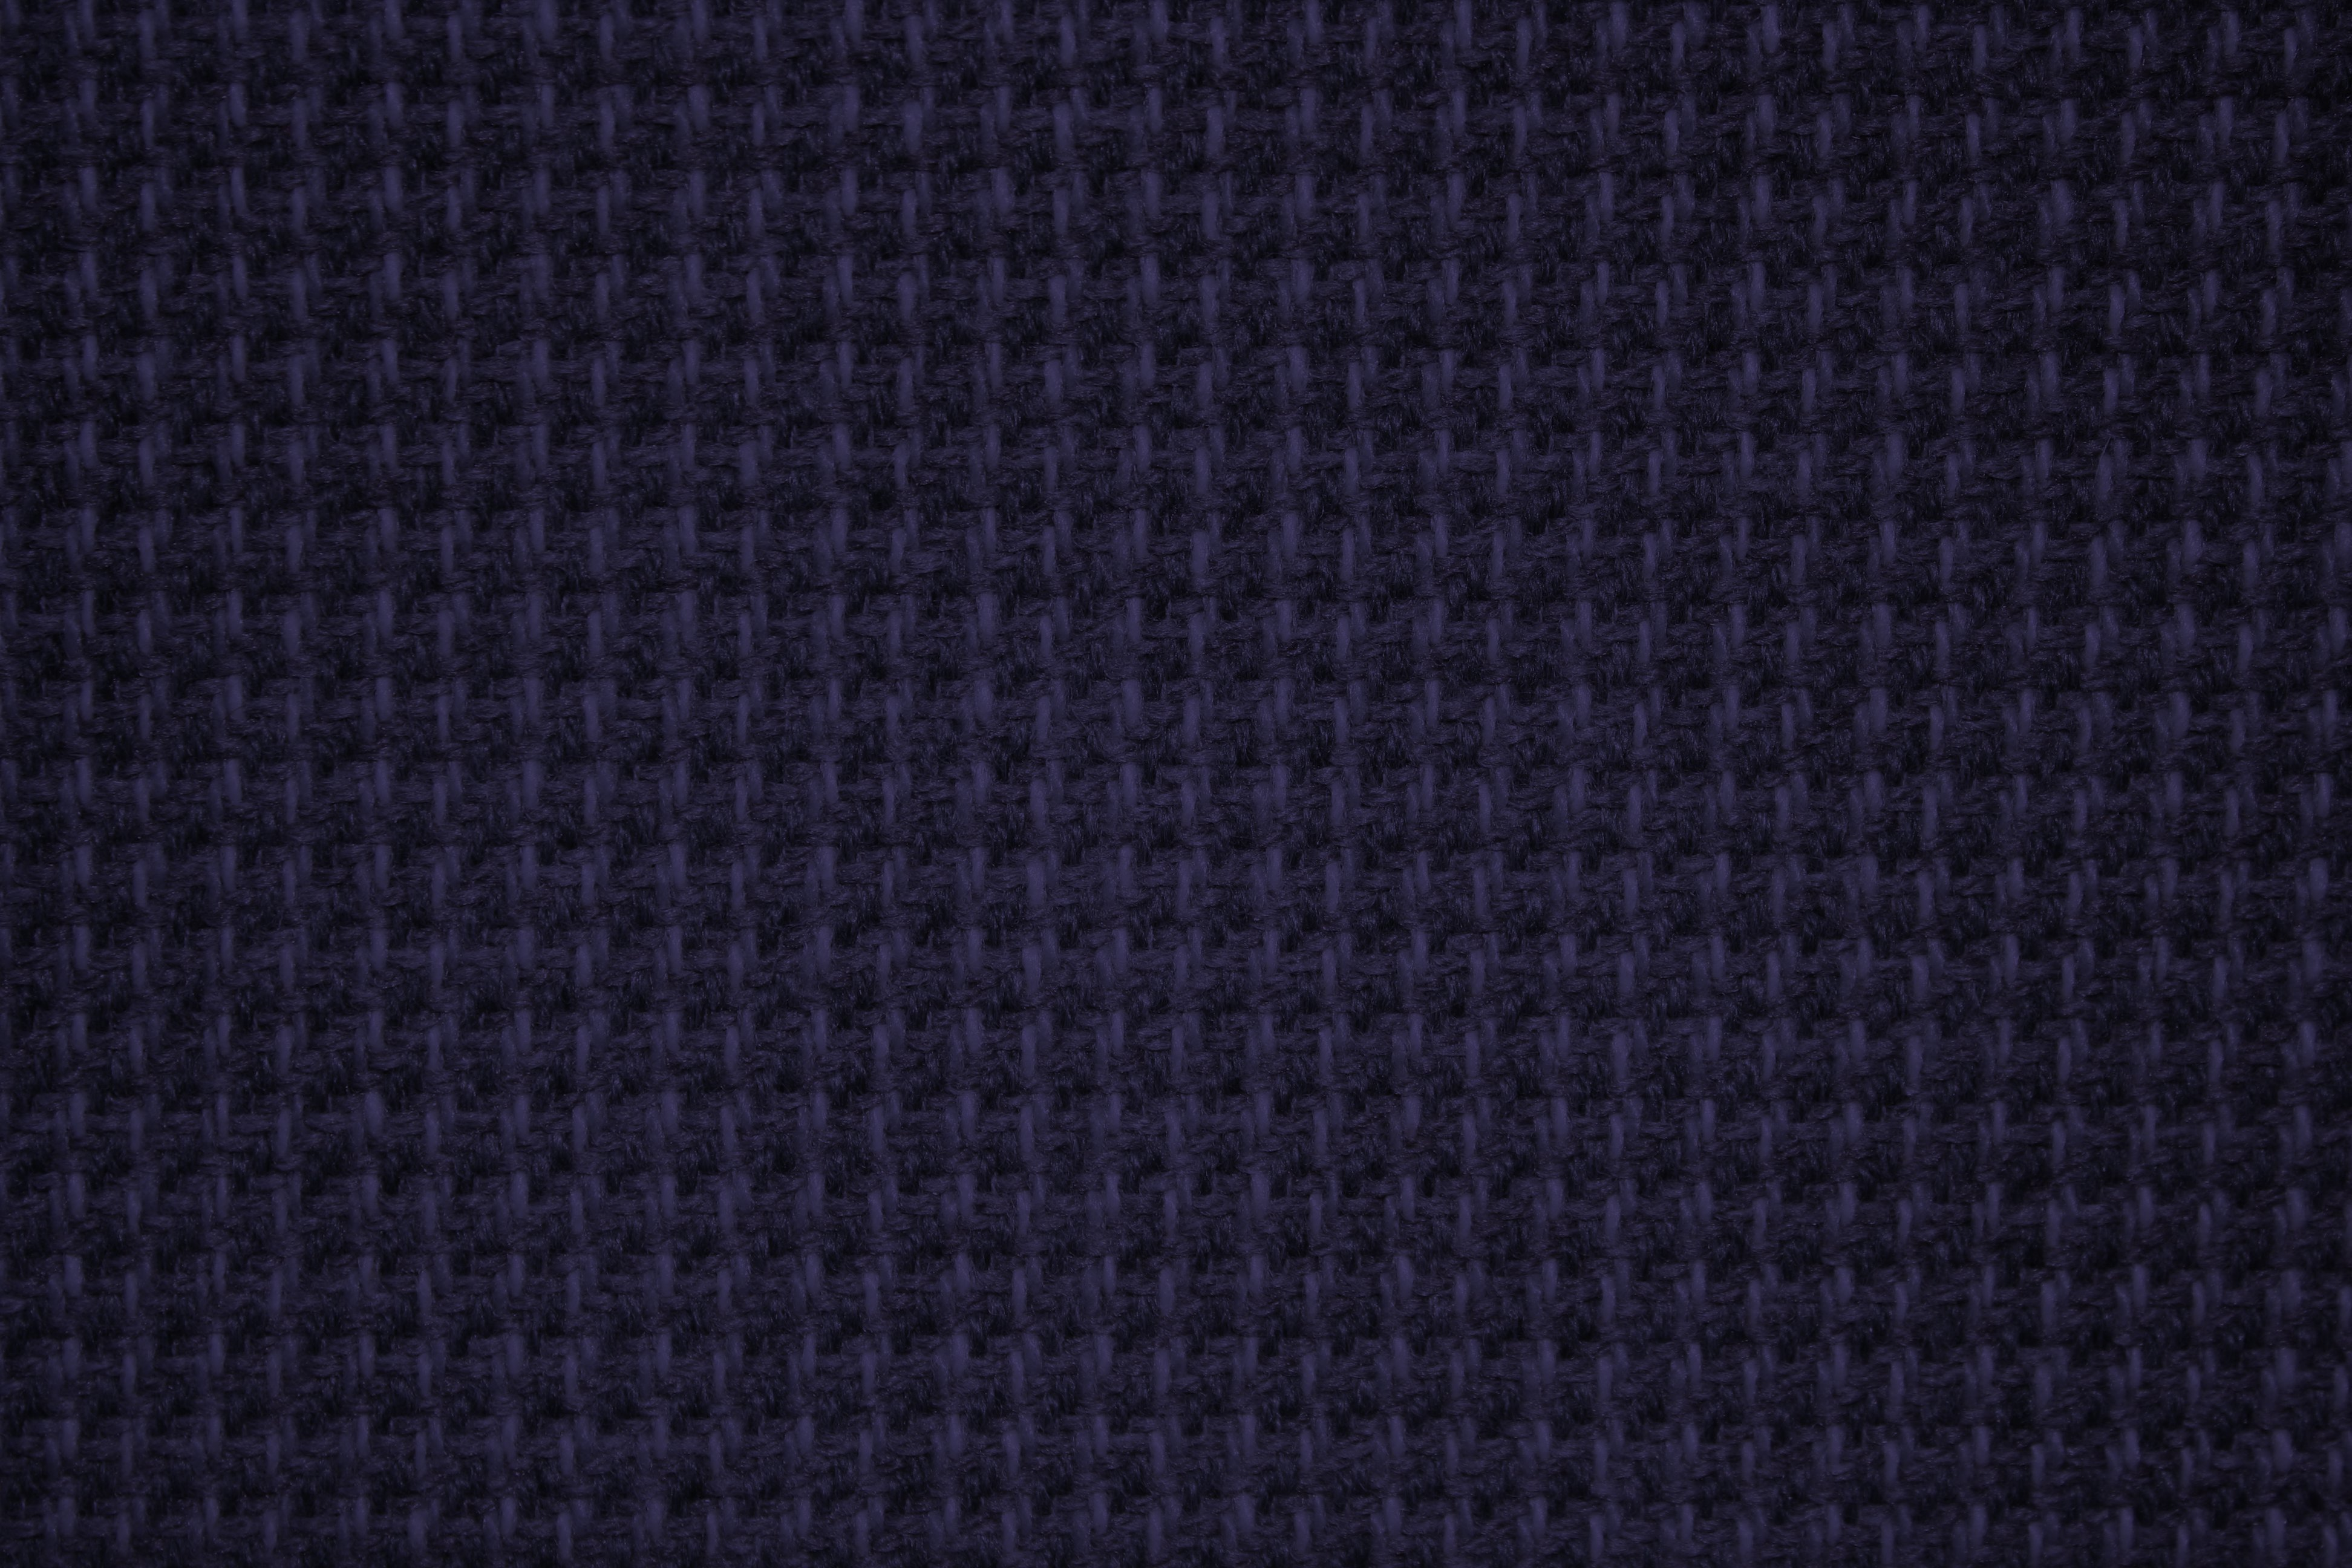 Dining room chair upholstery fabric clarity photographs